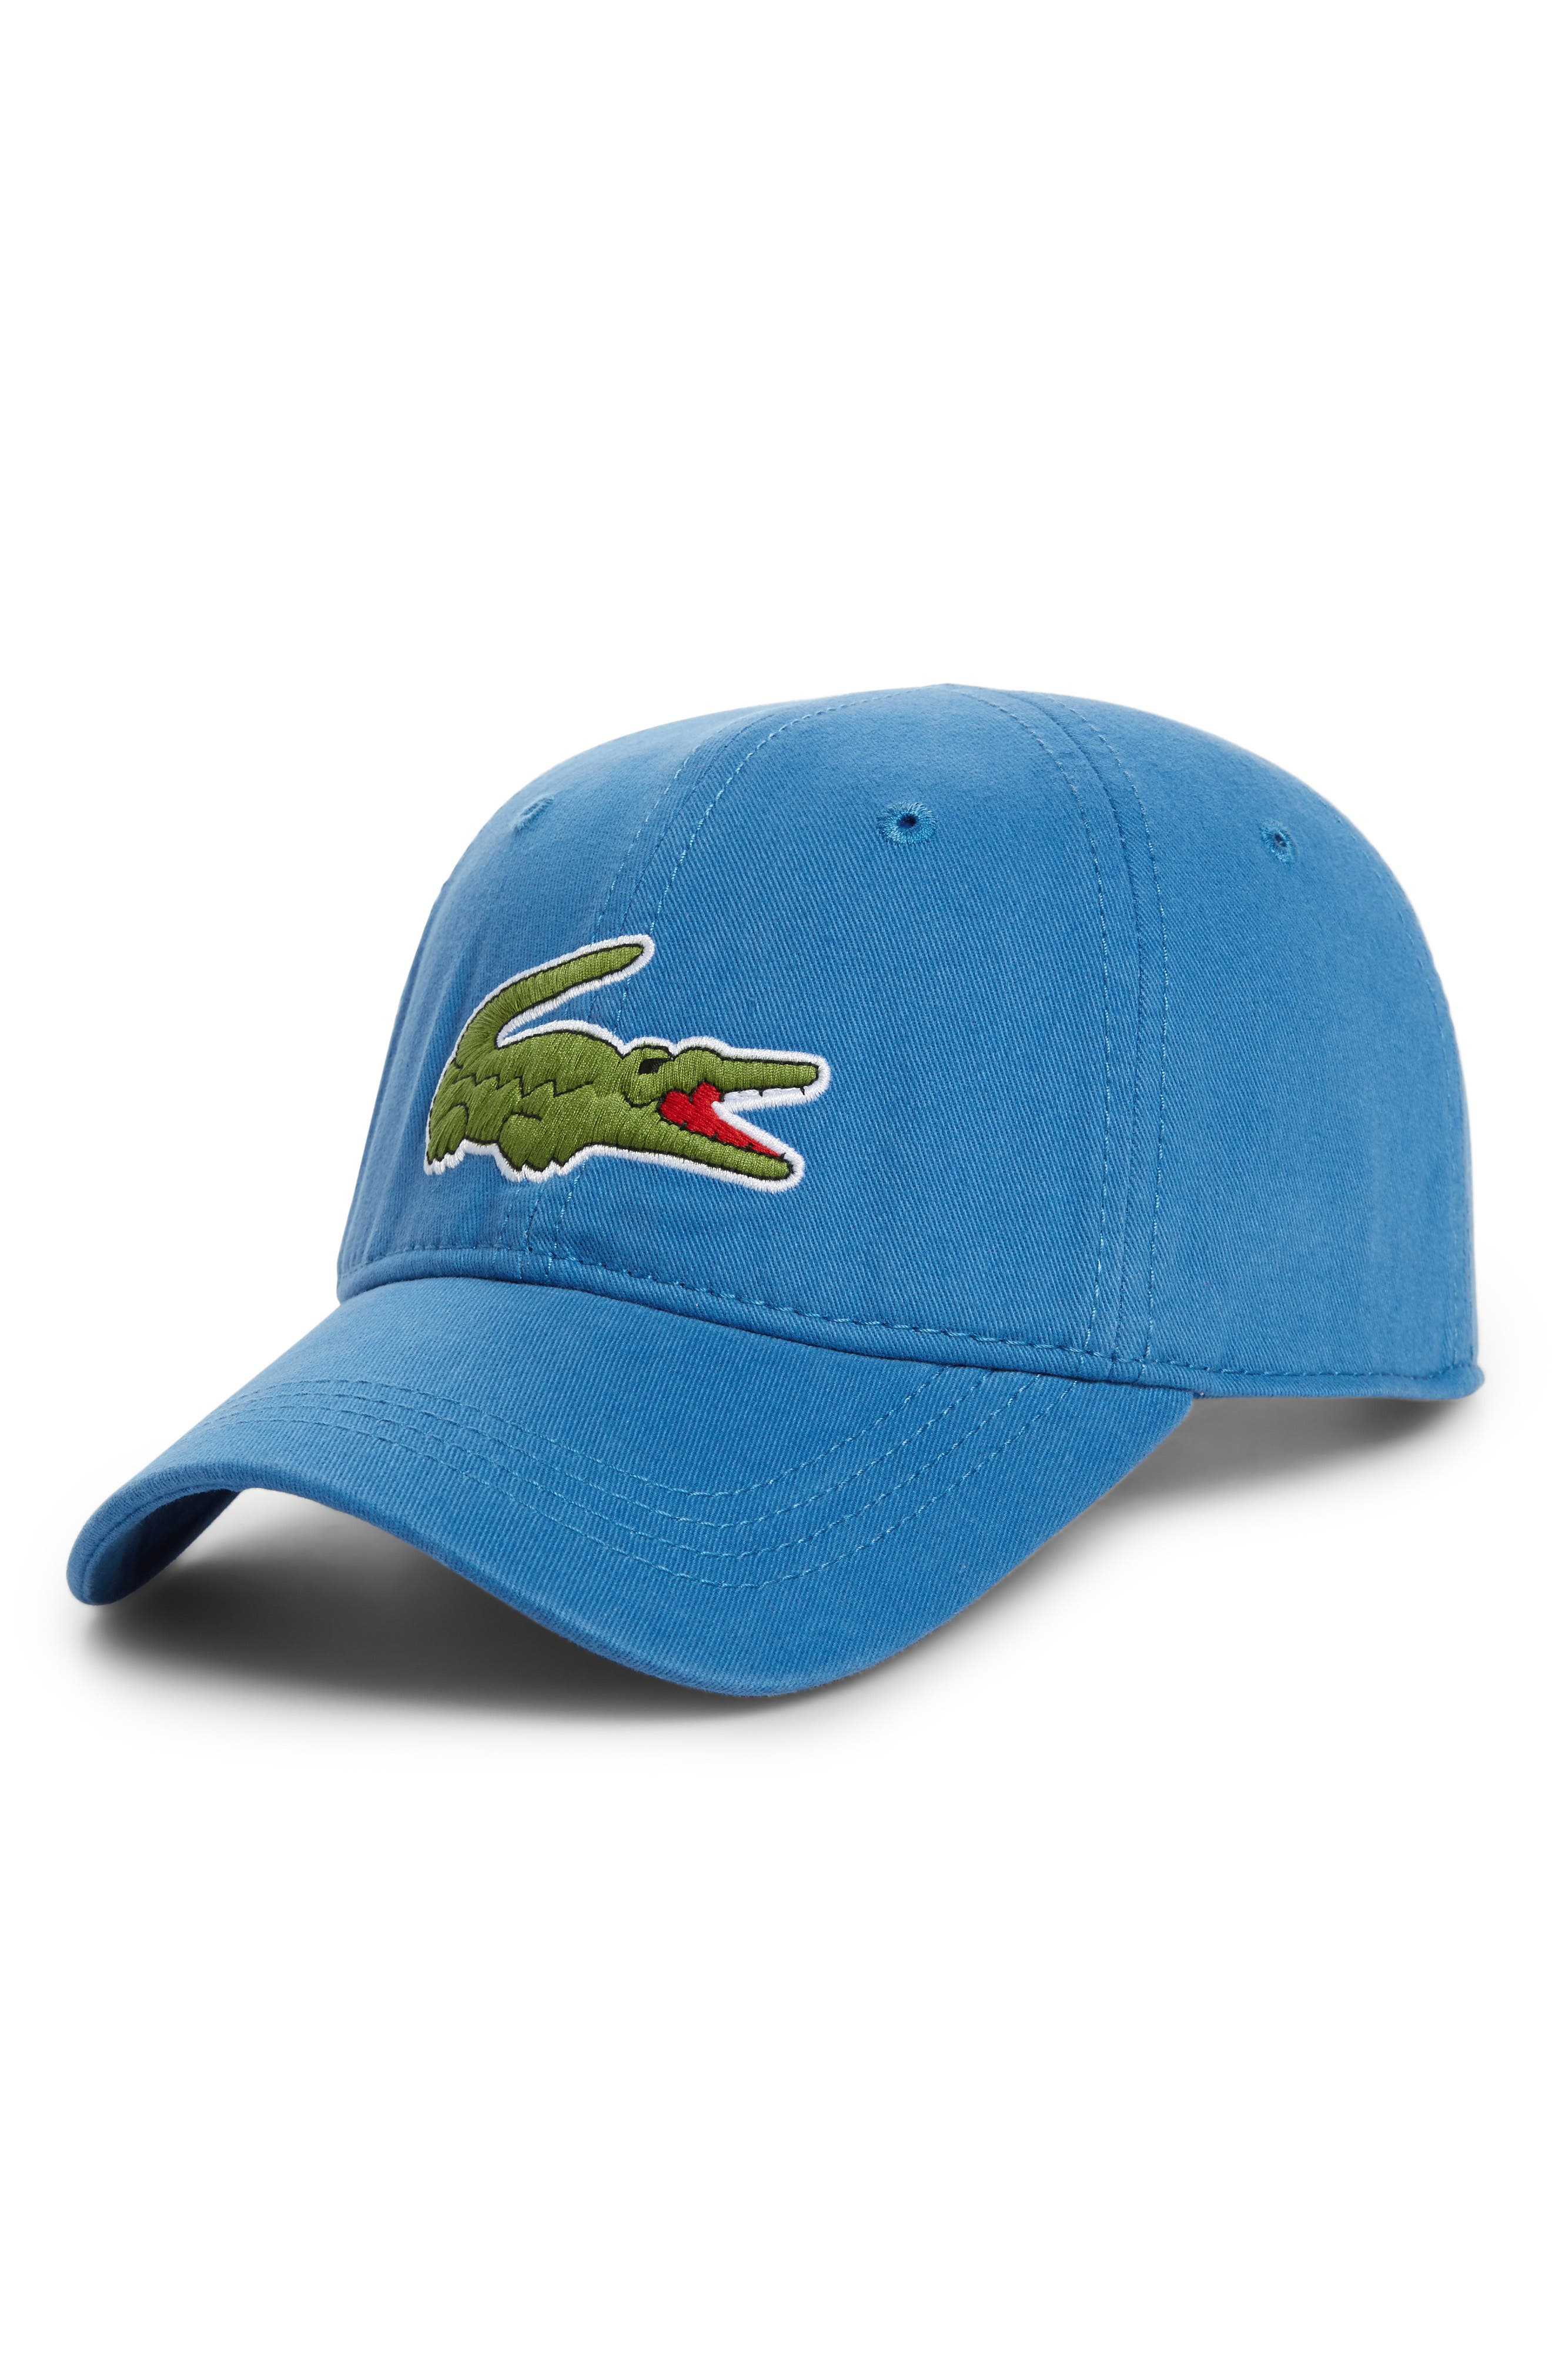 Lacoste  Big Croc  Logo Embroidered Cap - Blue In Medway  992e55a70342